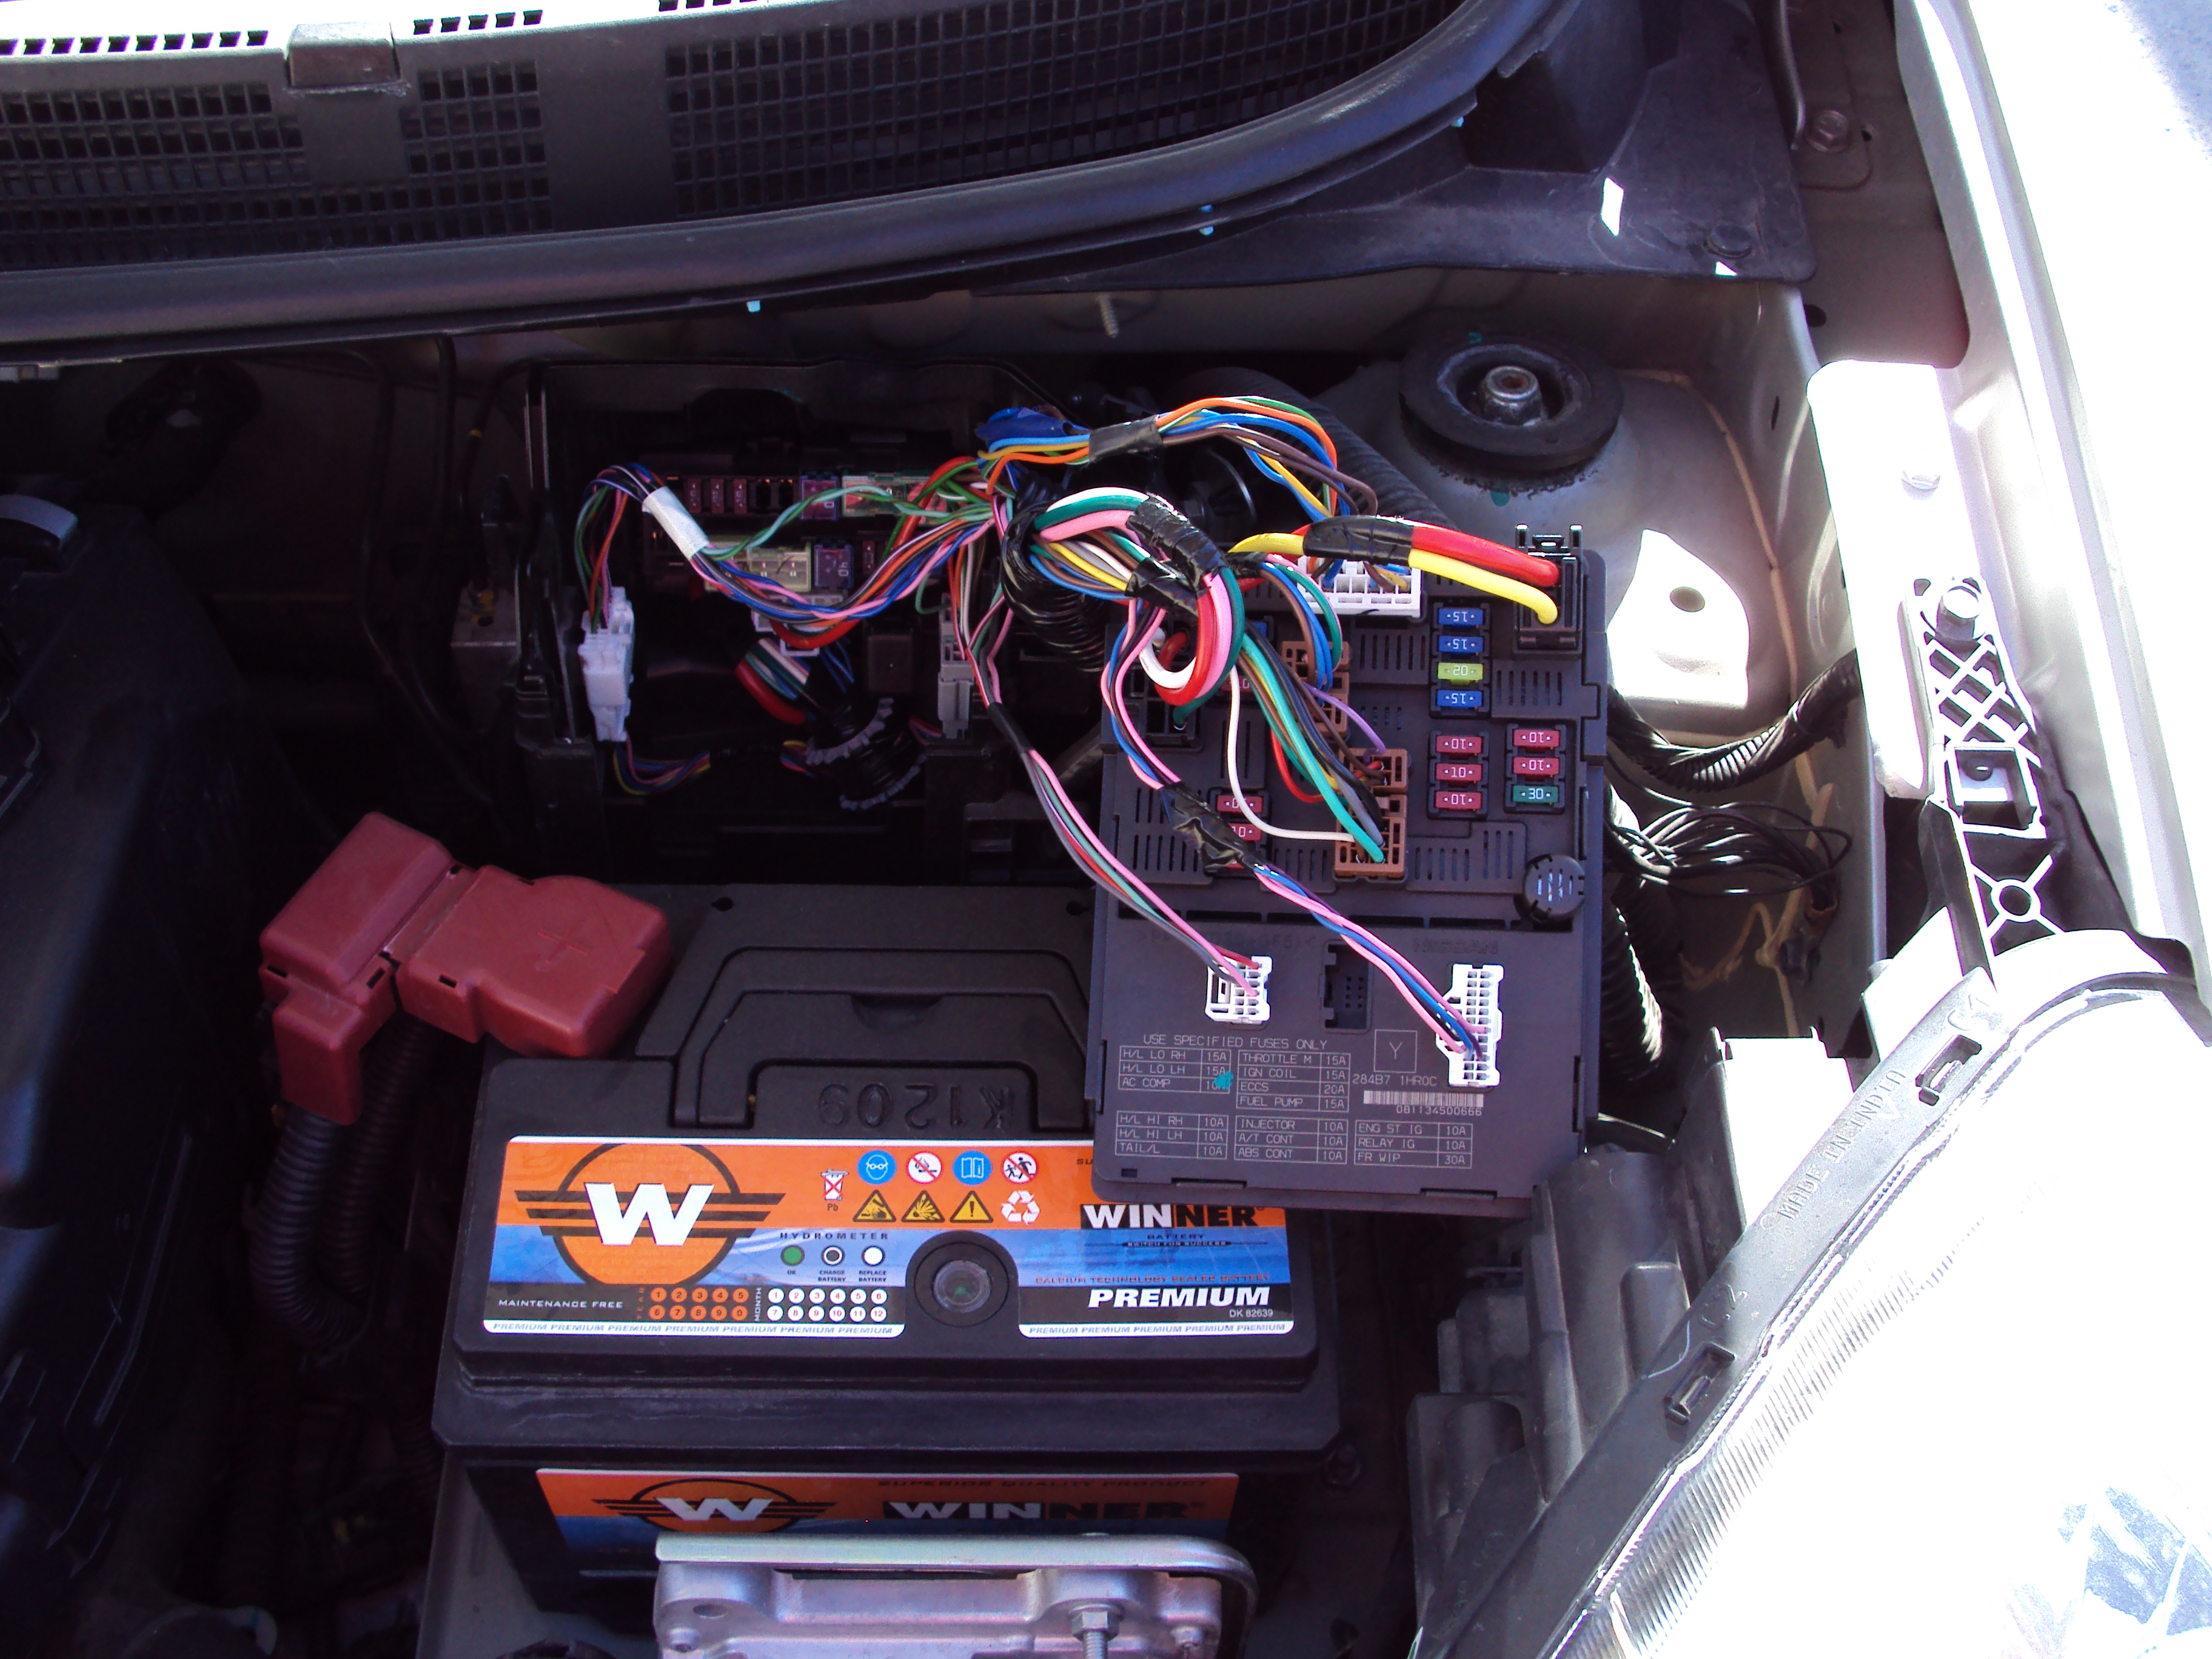 hight resolution of nissan micra battery fuse box wiring diagram datanissan battery fuse box nissan micra battery fuse box